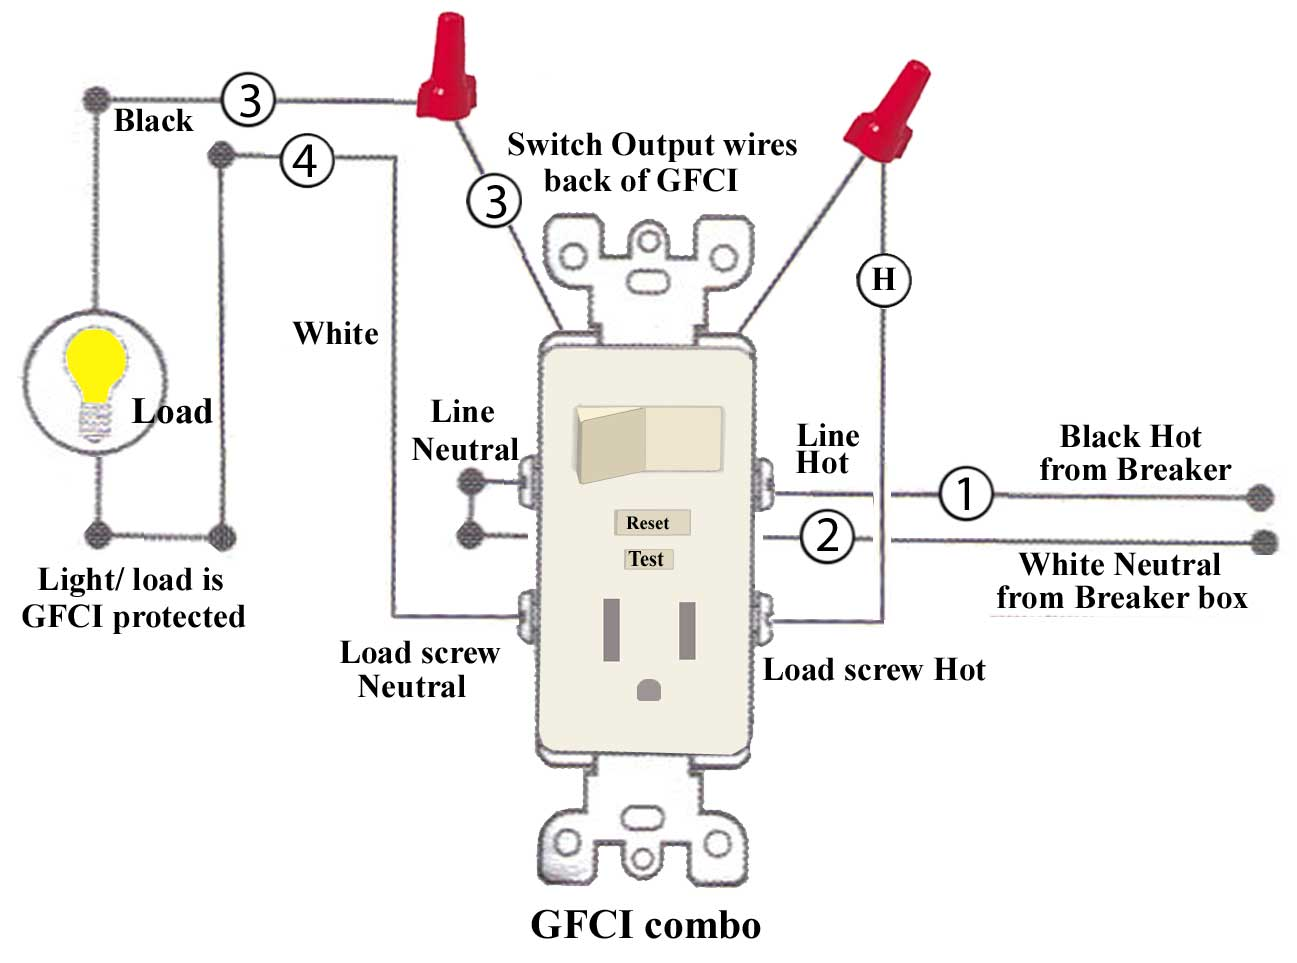 GFCI combination wiring. Larger image